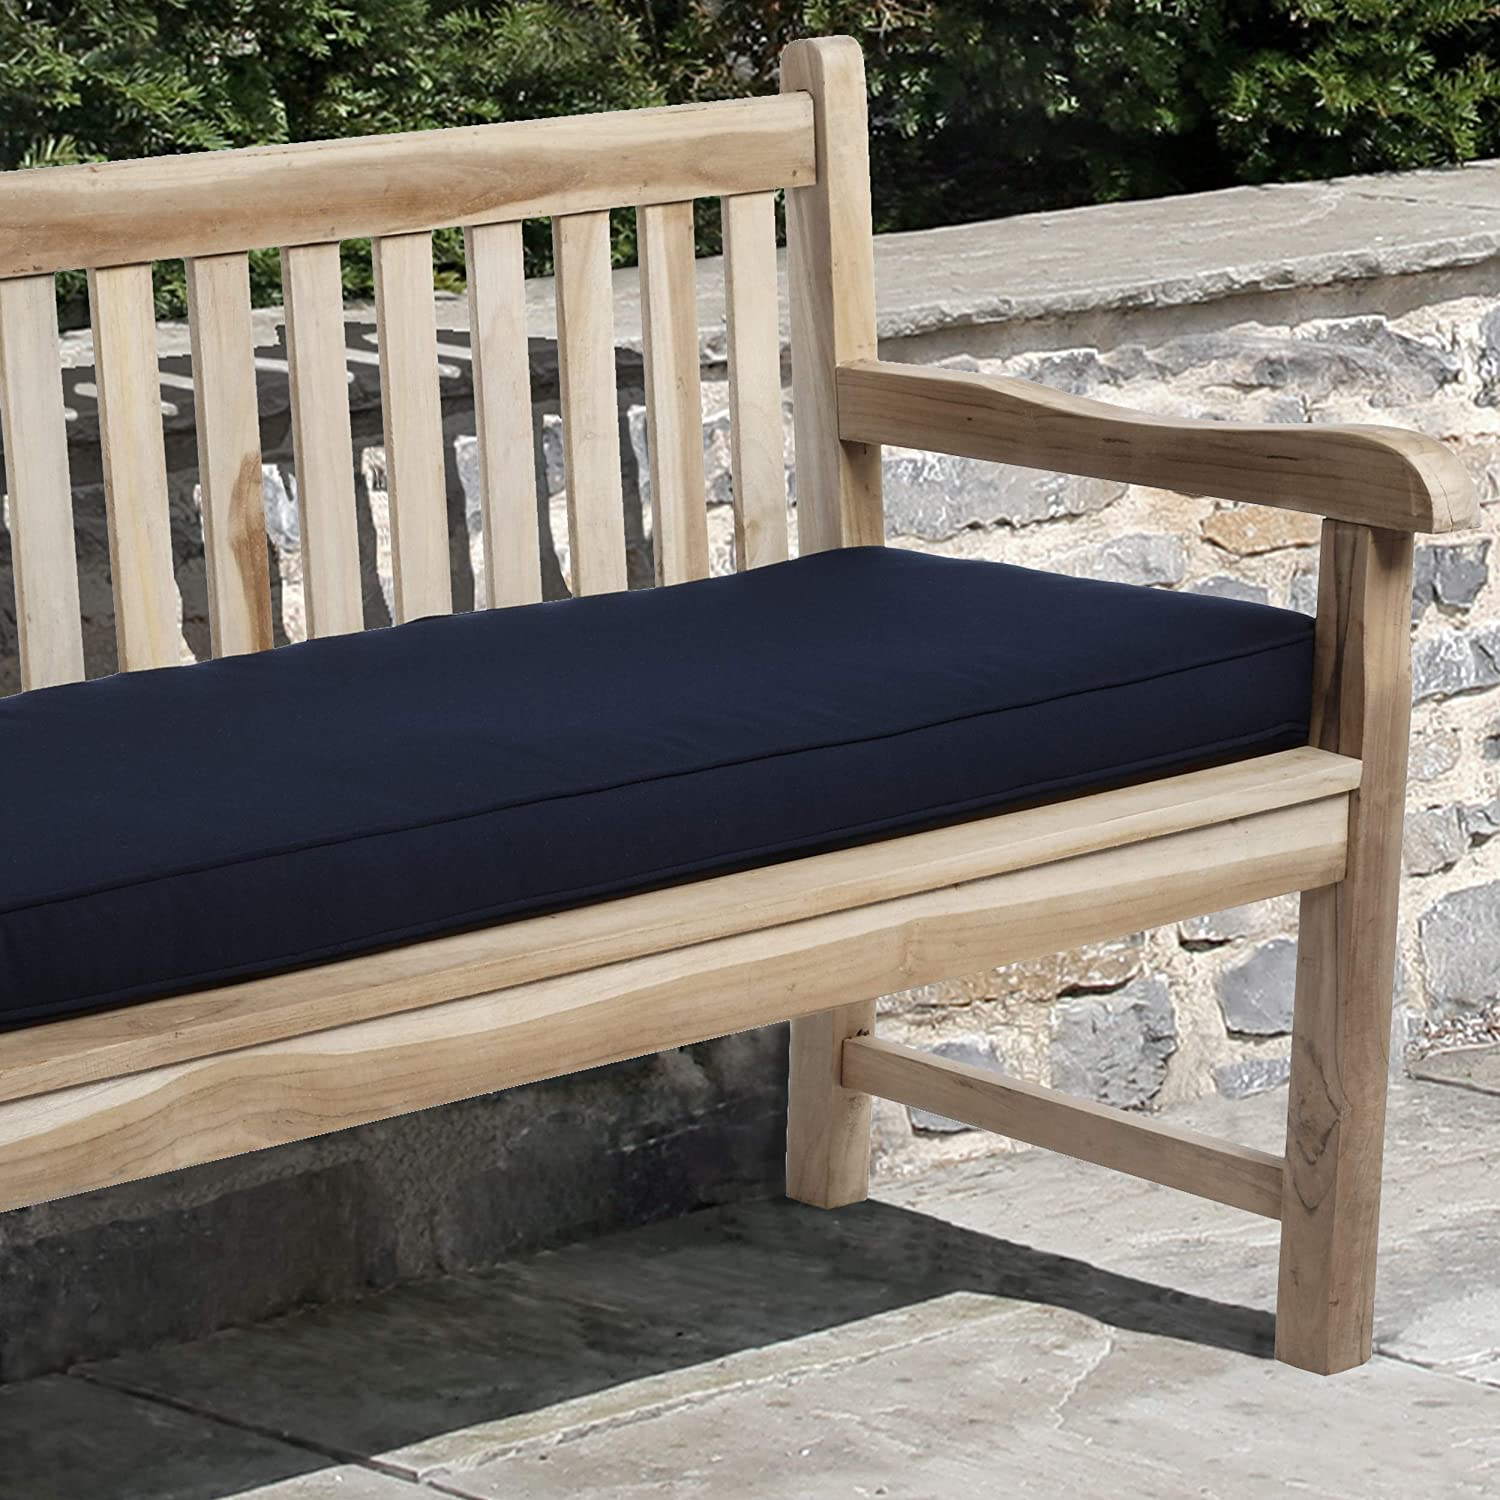 Mozaic AZCS0127 Indoor or Outdoor Sunbrella Bench Cushion with Corded Edges and Tie Backs, 60 inches, Canvas Navy